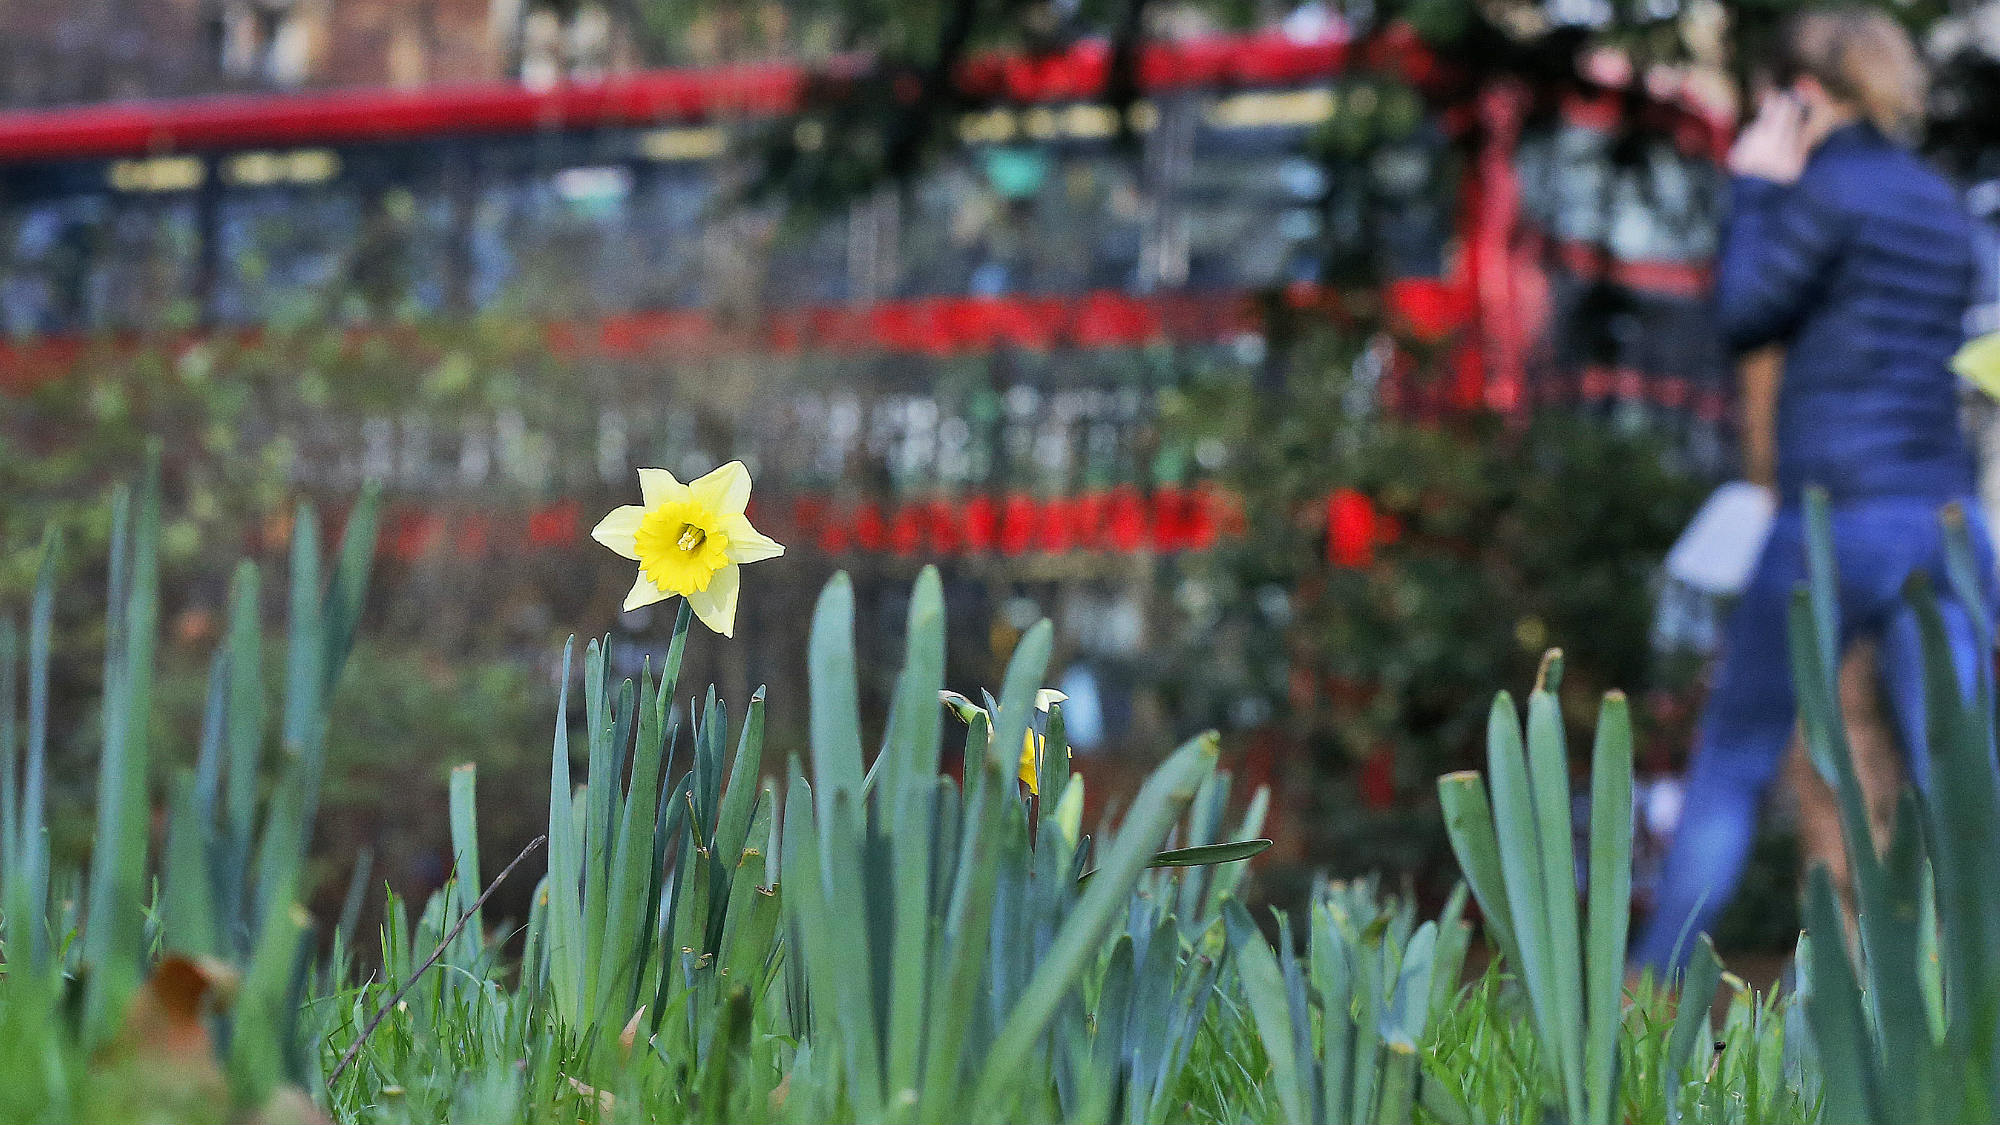 Daffodils grow in a Russell Square garden in London, Wednesday, Dec. 16, 2015. The UK could be set for the warmest December in almost 70 years as temperatures of 16C, 60F, around 10C above the average for this time of year. The weather has been so mild that daffodils, normally a symbol of spring, have been begun flowering as far north as Chester and Northern Ireland.